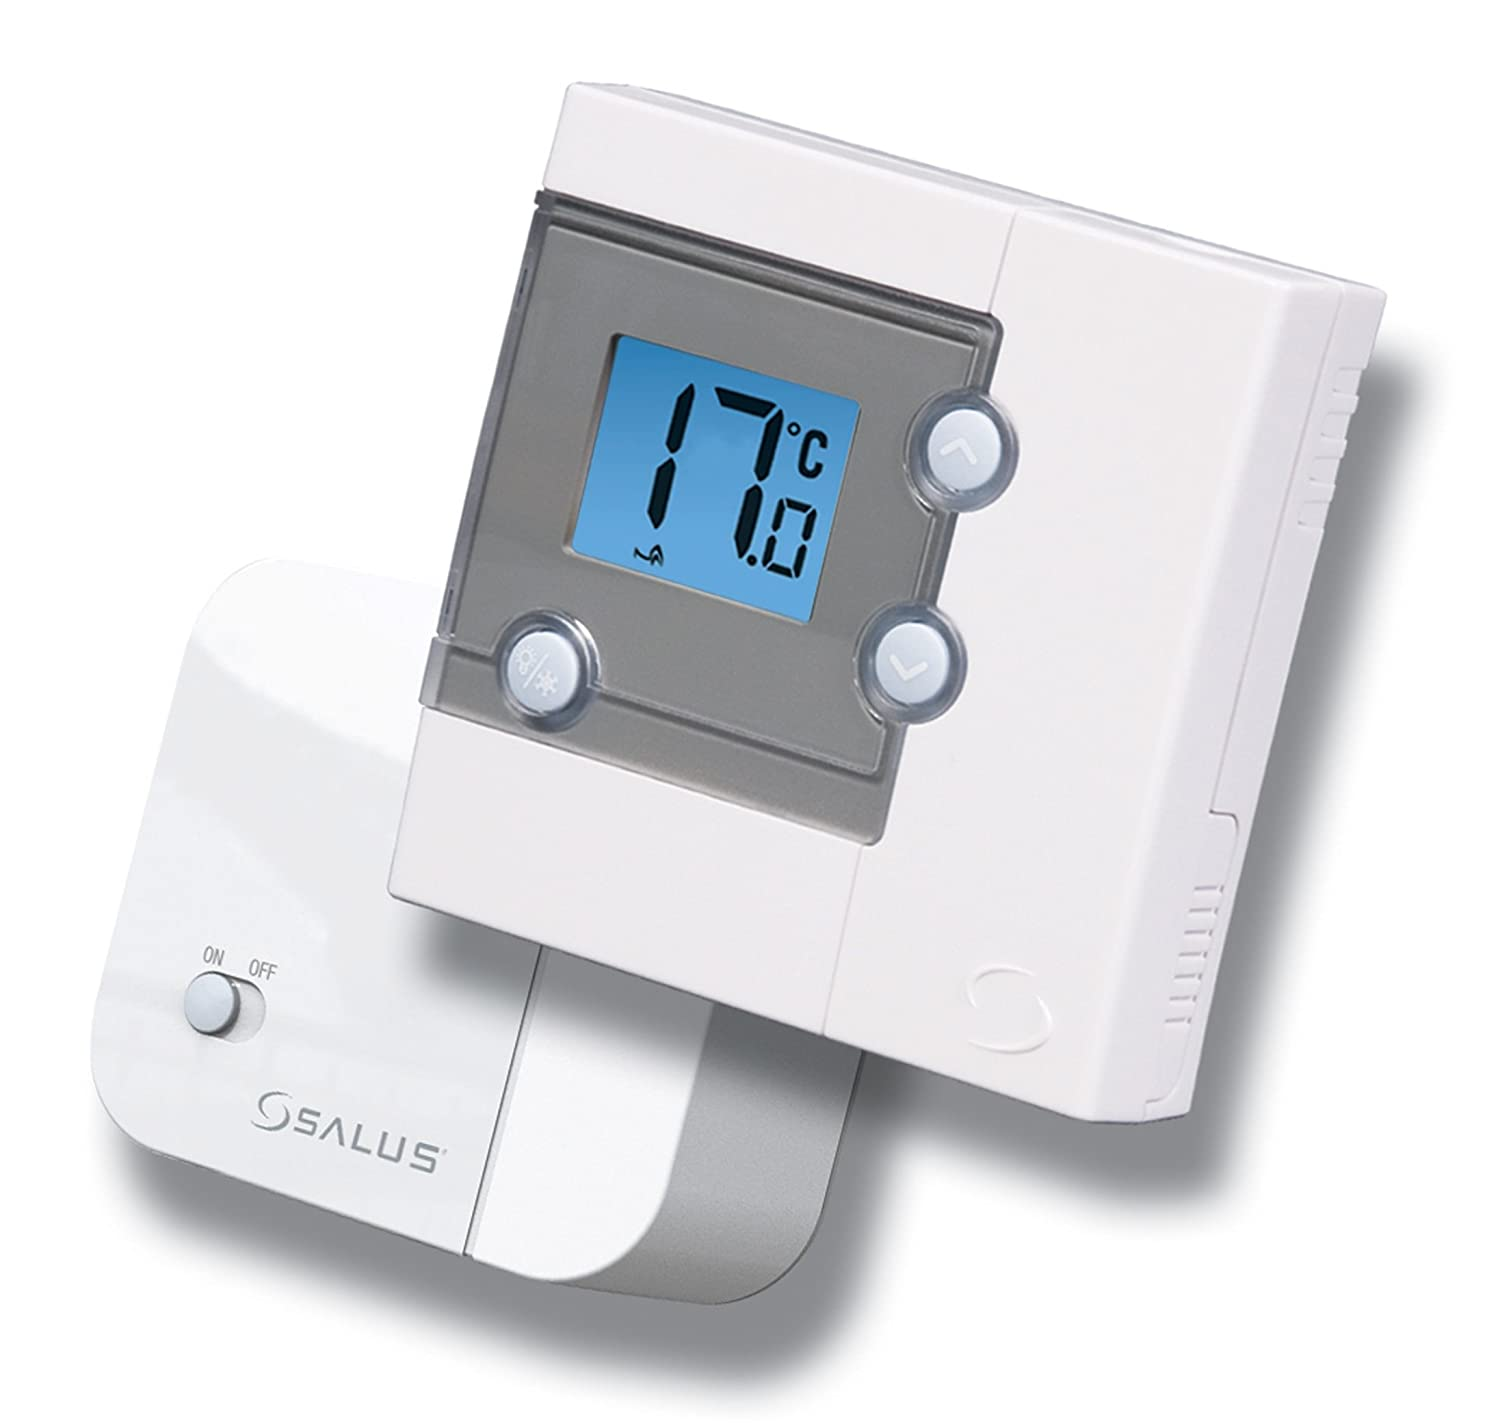 71QBMH gVeL._SL1500_ salus rt500 programmable room thermostat wired amazon co uk salus rt300rf wiring diagram at n-0.co